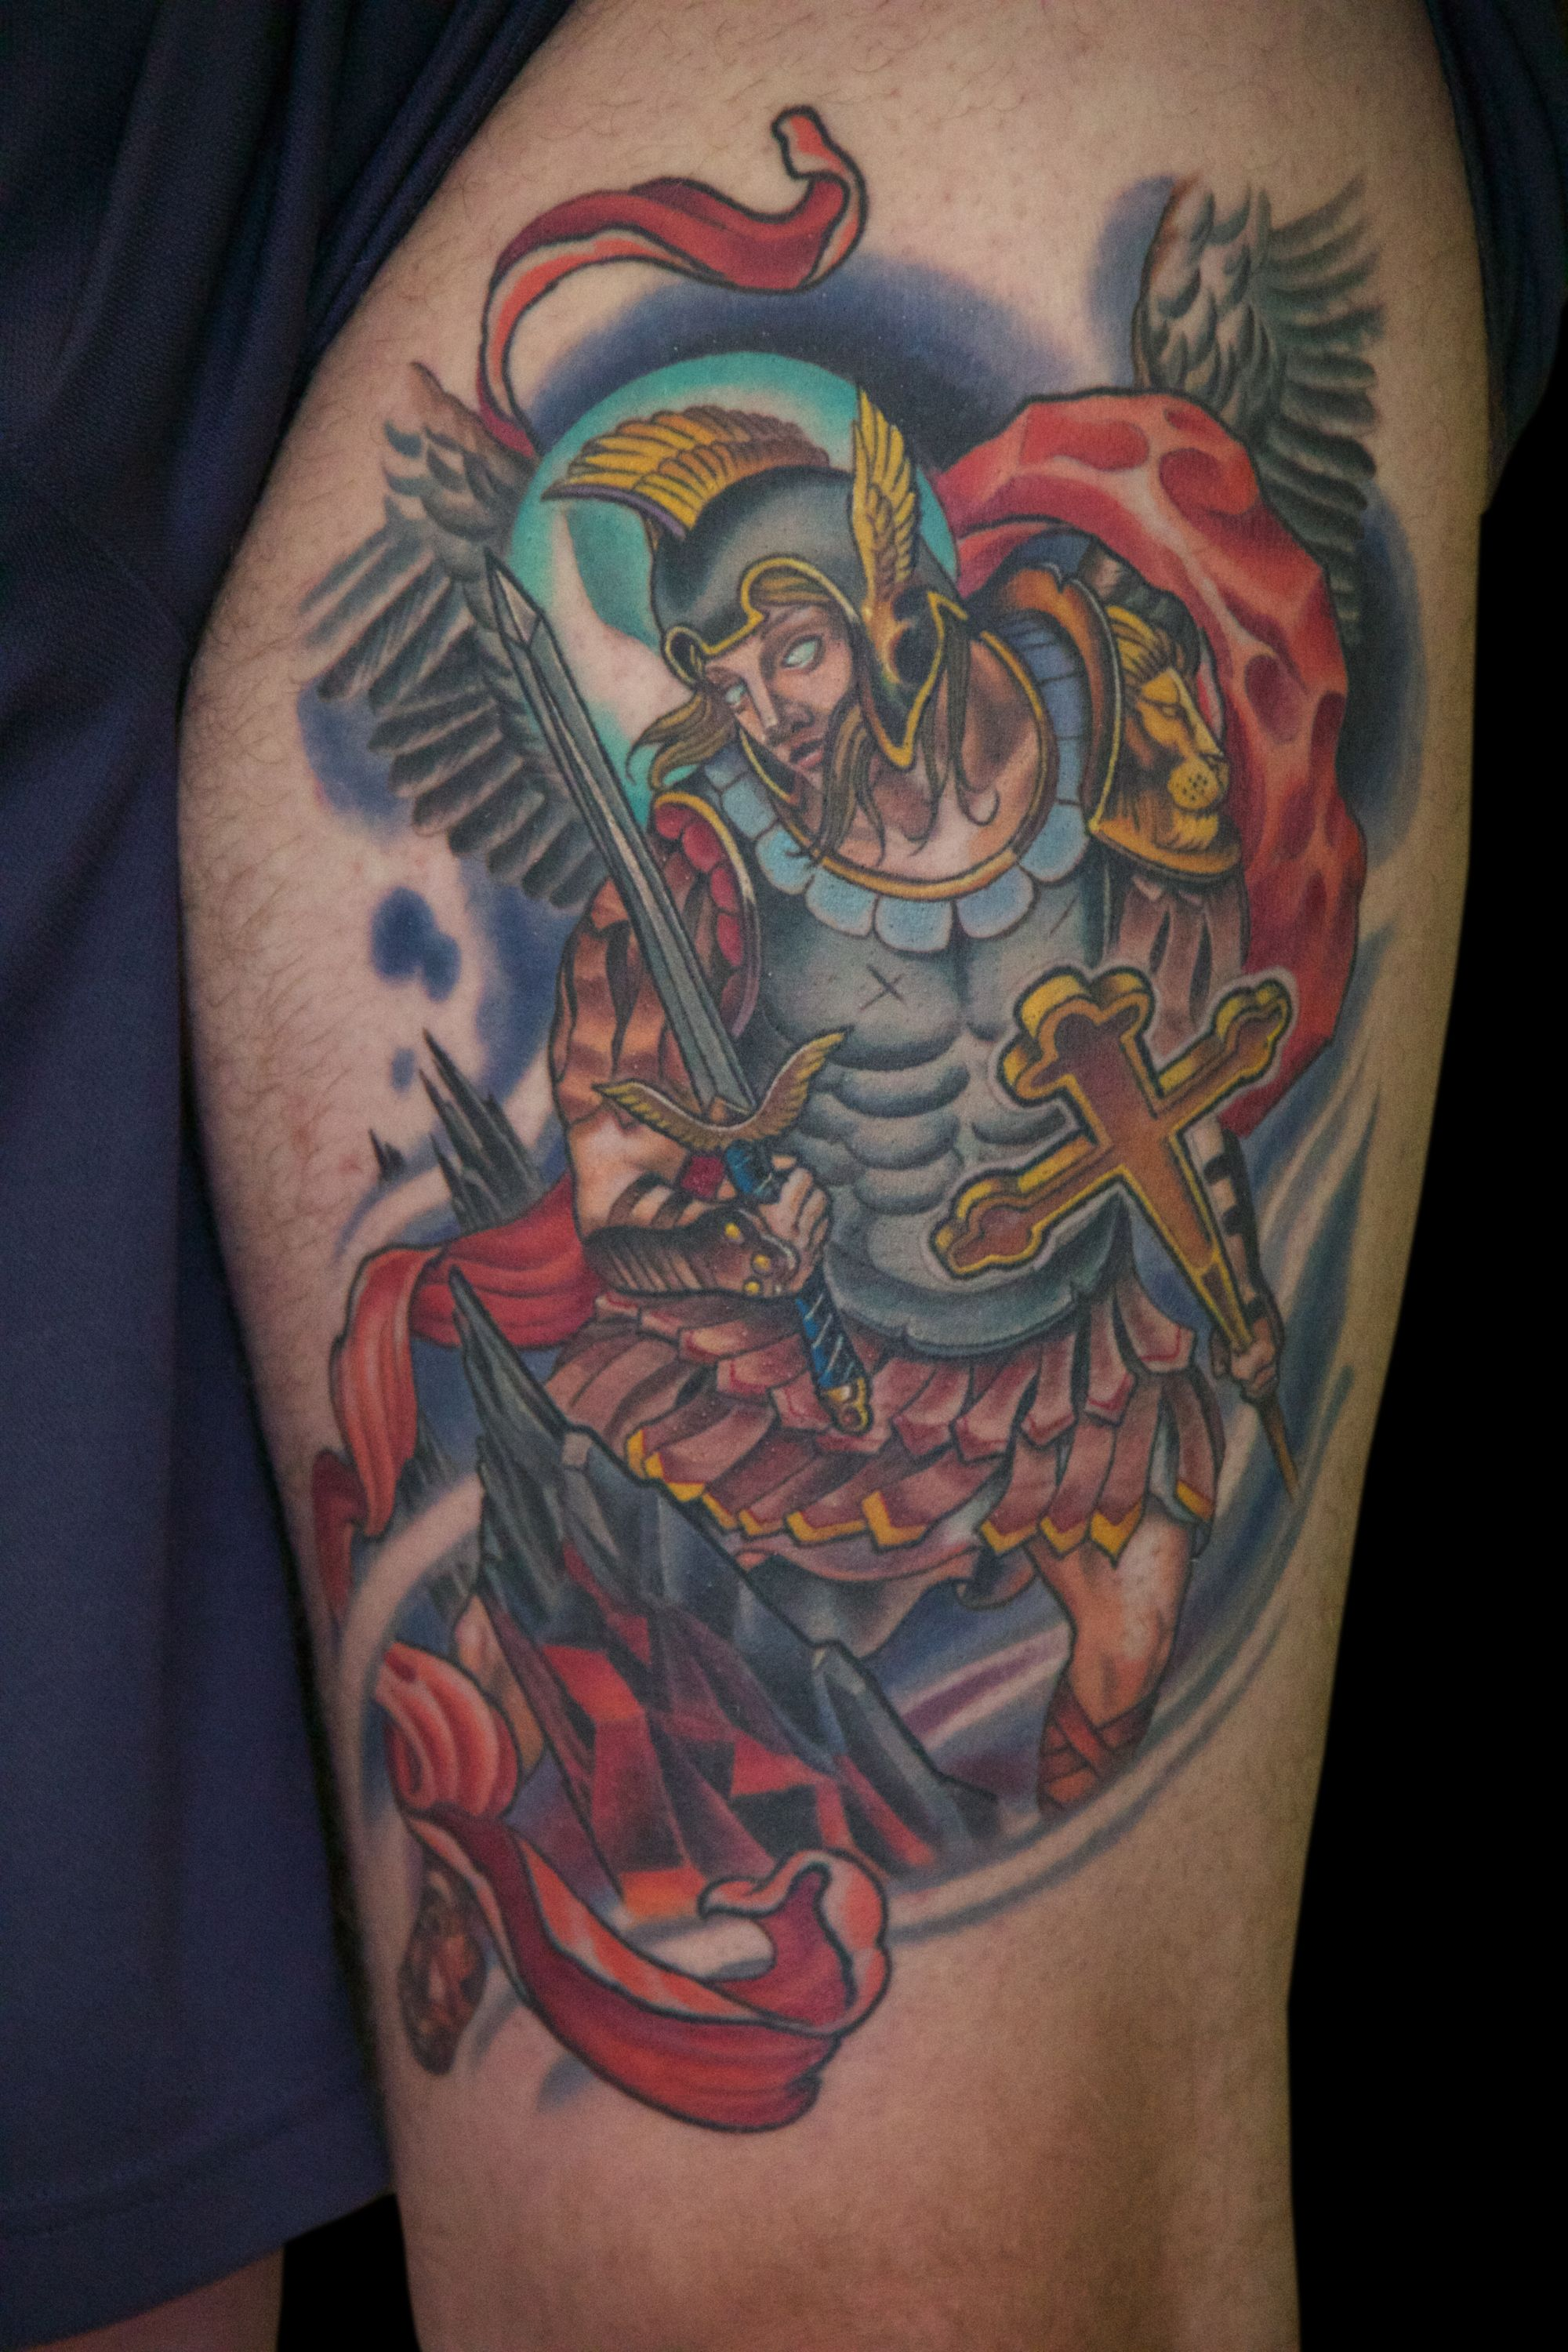 I do a lot of saints and religious icons, but they are often in realistically rendered black & grey. This was a fun and more illustrative version of St. Michael in color- nice to change it up sometimes! #ryanthompsontattoos #tradewindstattoo #njtattooartist #tomsrivernj #tattoo #guyswithtattoos #cooltattoos #thightattoo #legtattoo #stmichael #stmichaeltattoo #religioustattoo #inkedguys #colortattoo #illustrativetattoo #radtattoos #tattooedguy #eternalink #tattooartist #tattoostyle #healedtattoo